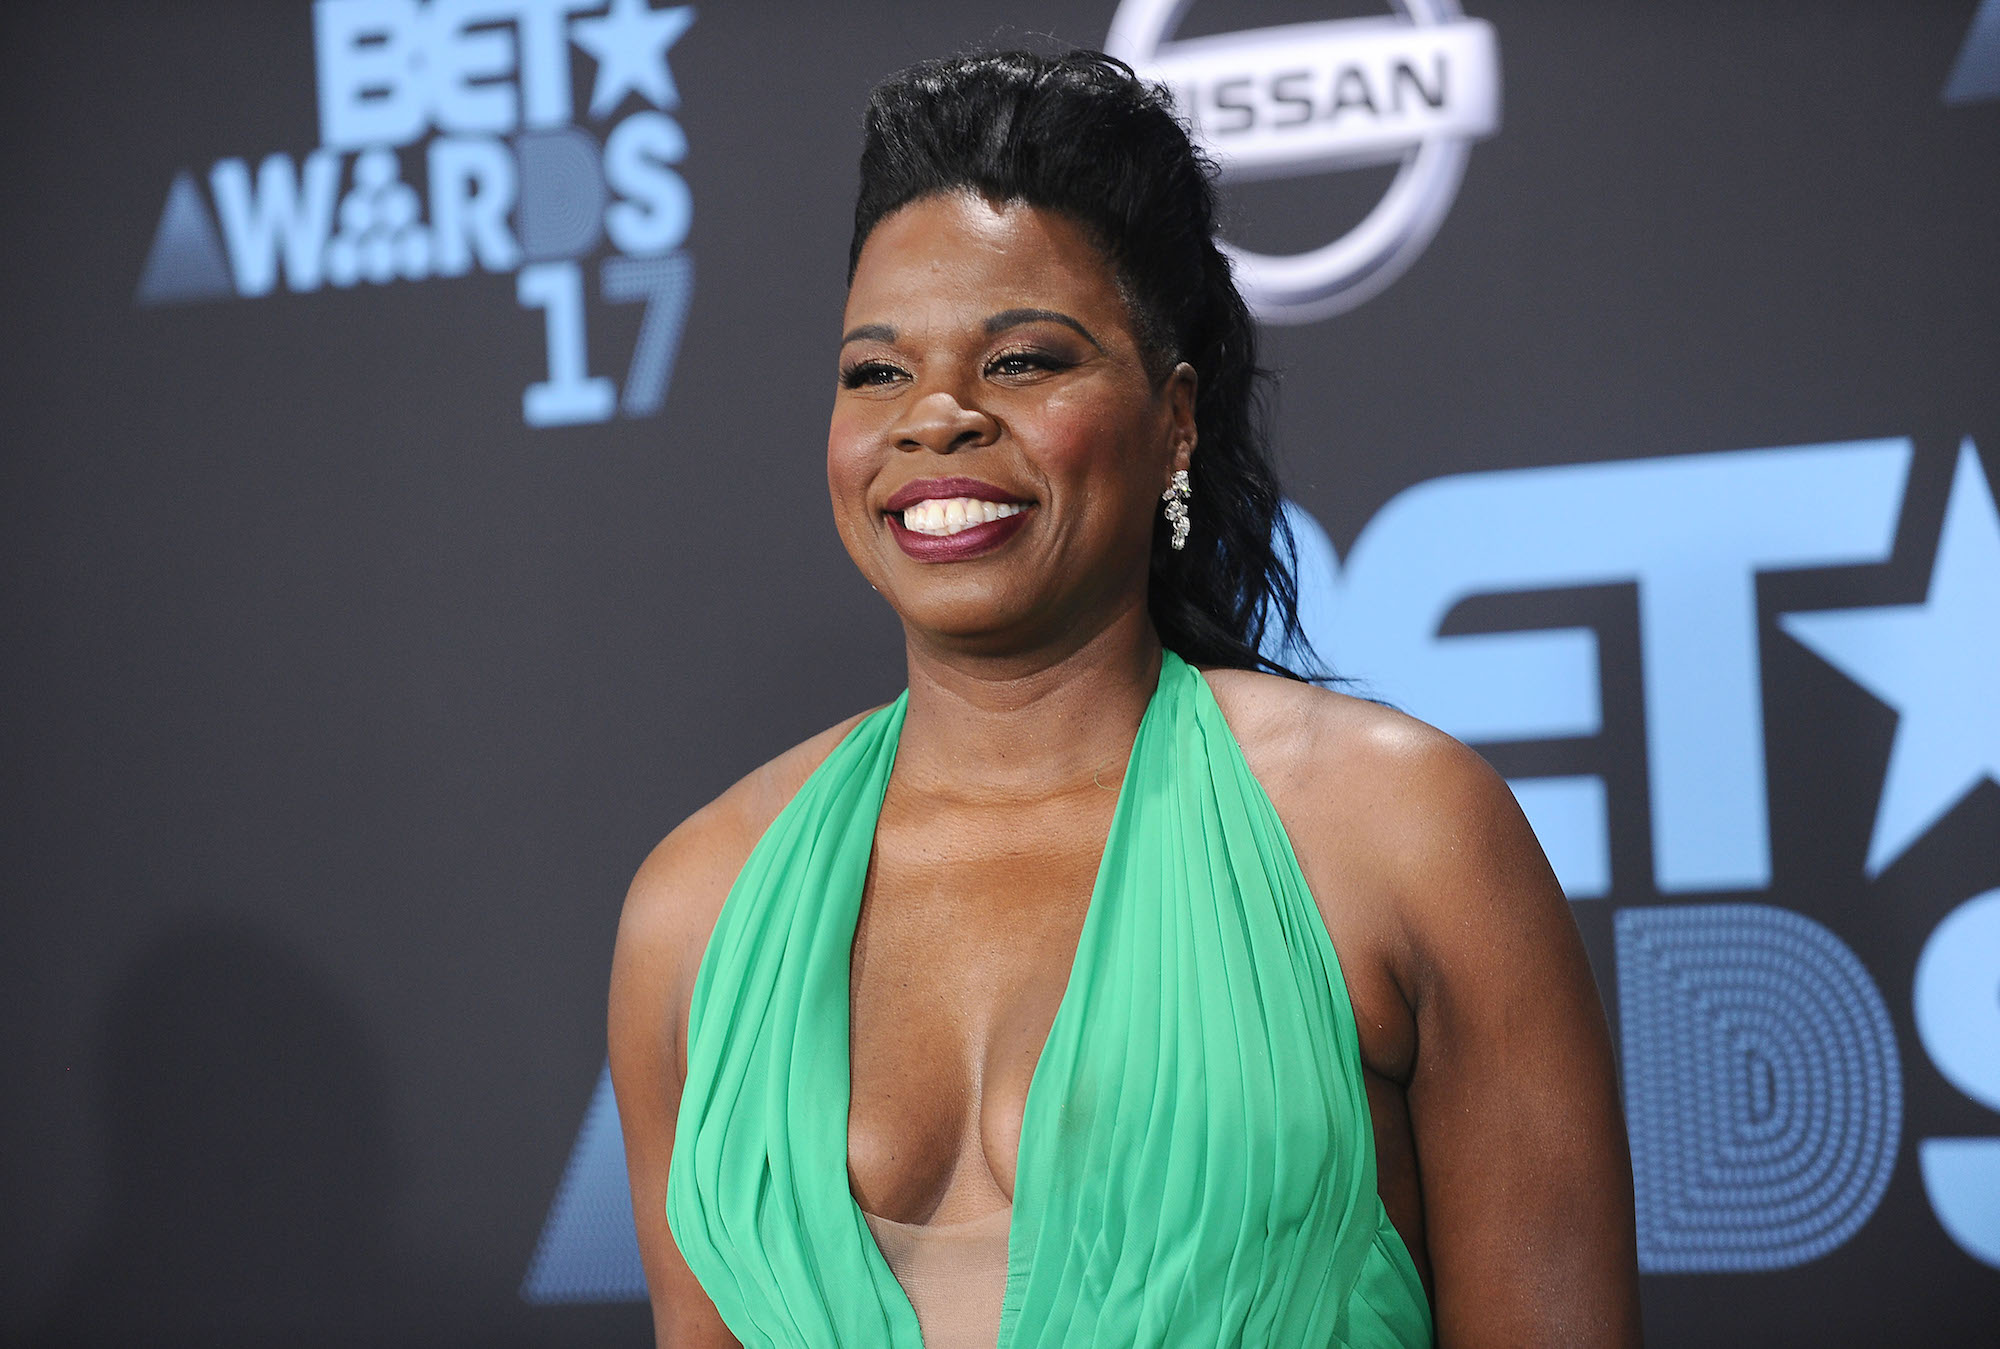 Leslie Jones lead